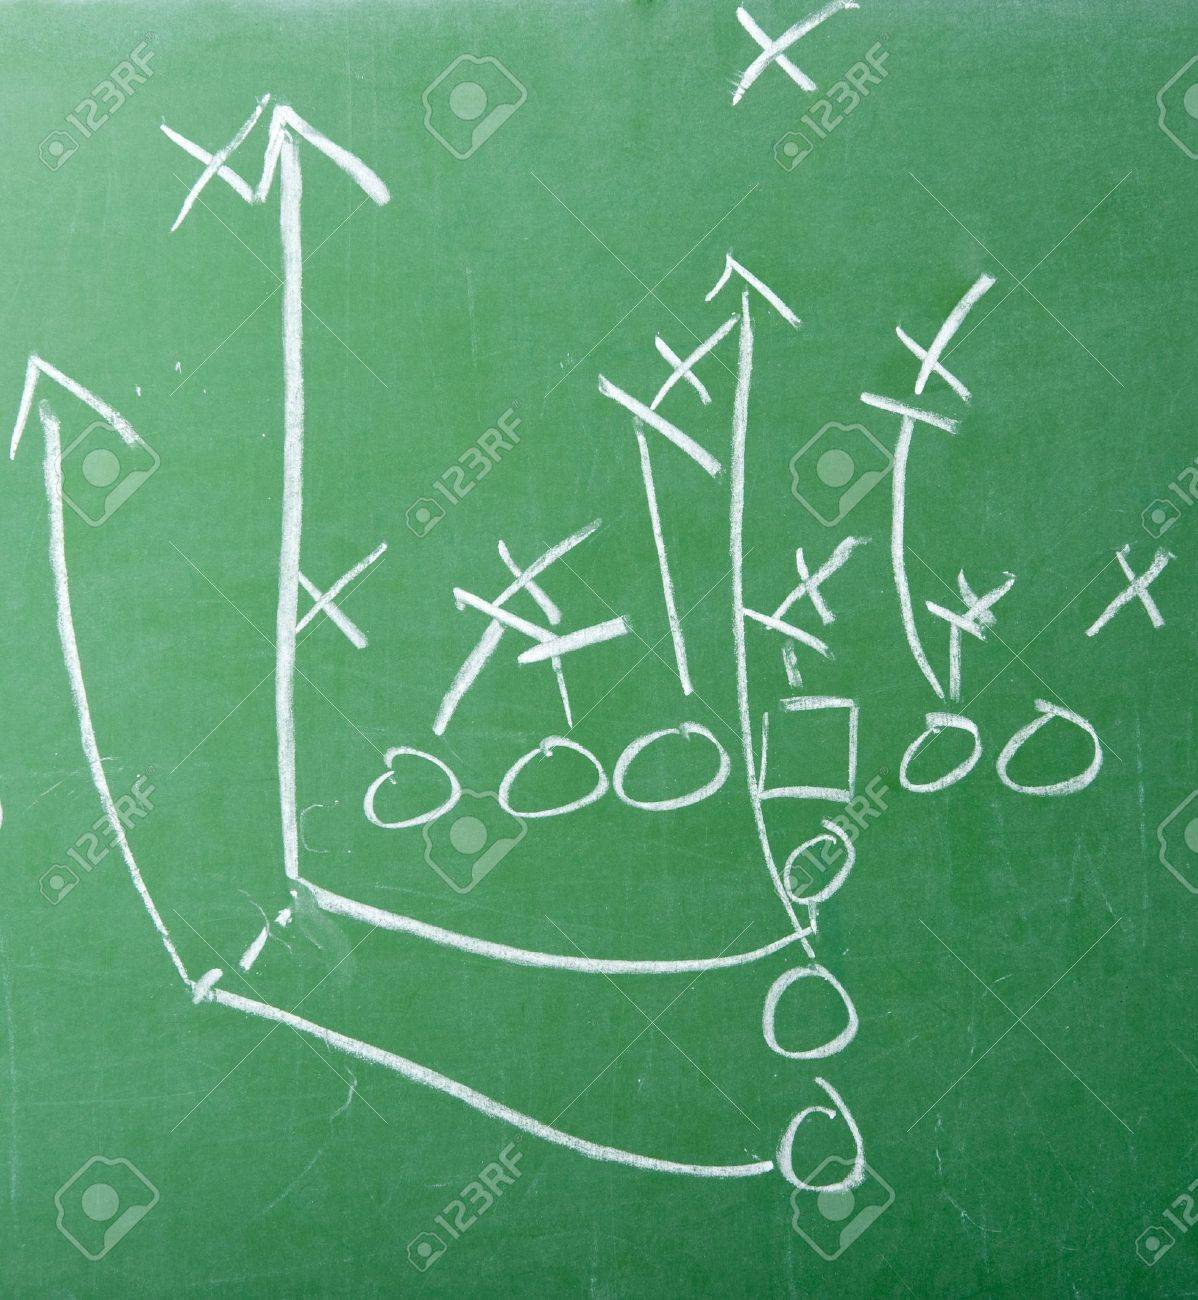 a diagram of an american football play on a green chalkboard stock    stock photo   a diagram of an american football play on a green chalkboard